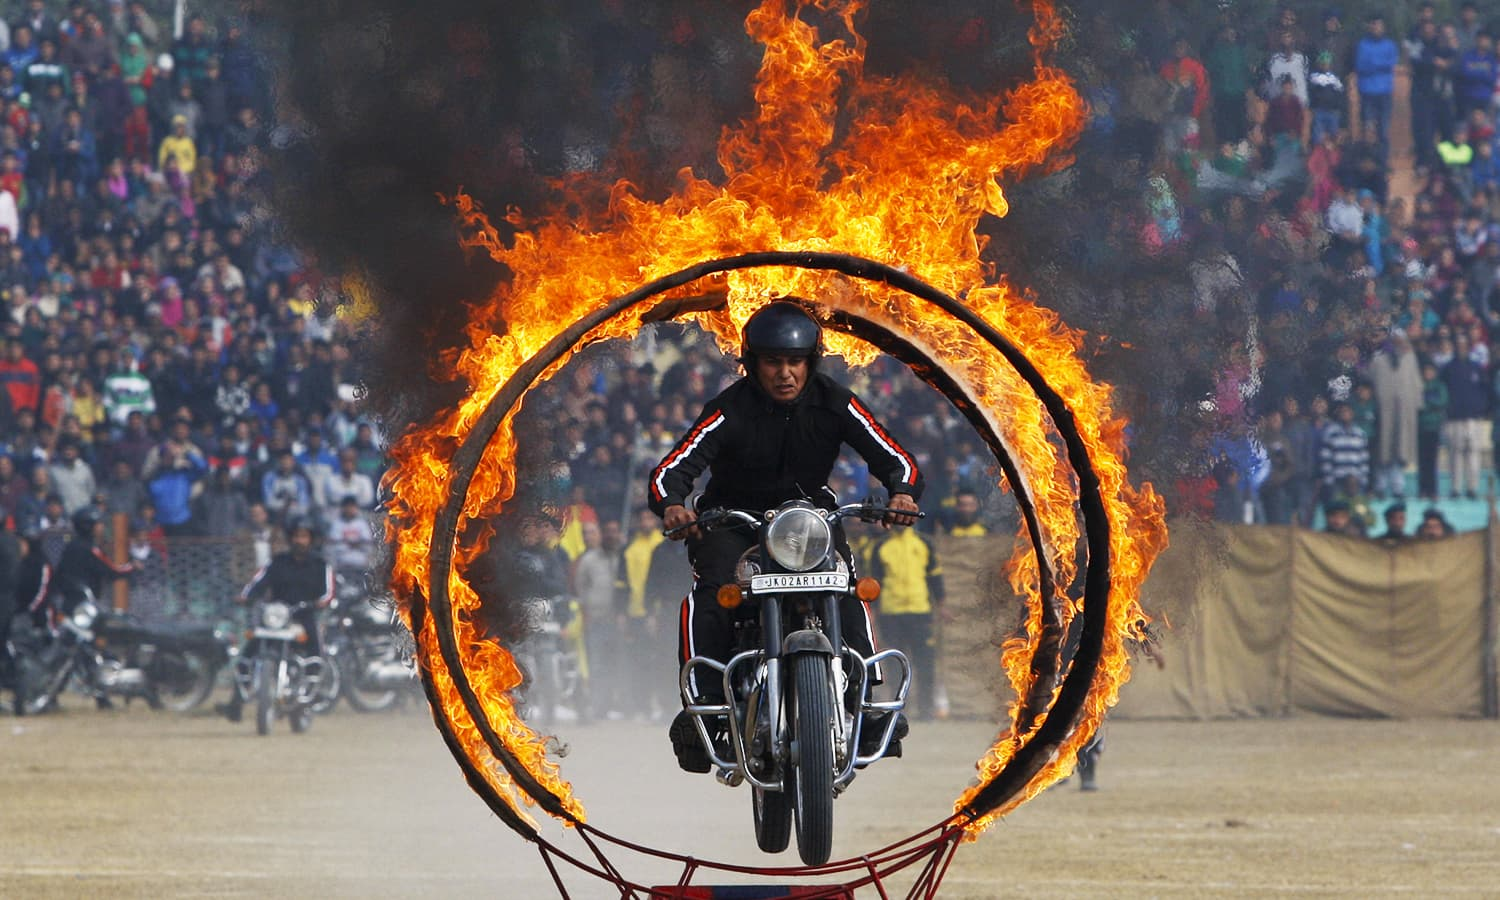 An India-Held Kashmir state policeman jumps through a fire wheel as he performs a motorcycle stunt. ─ AP